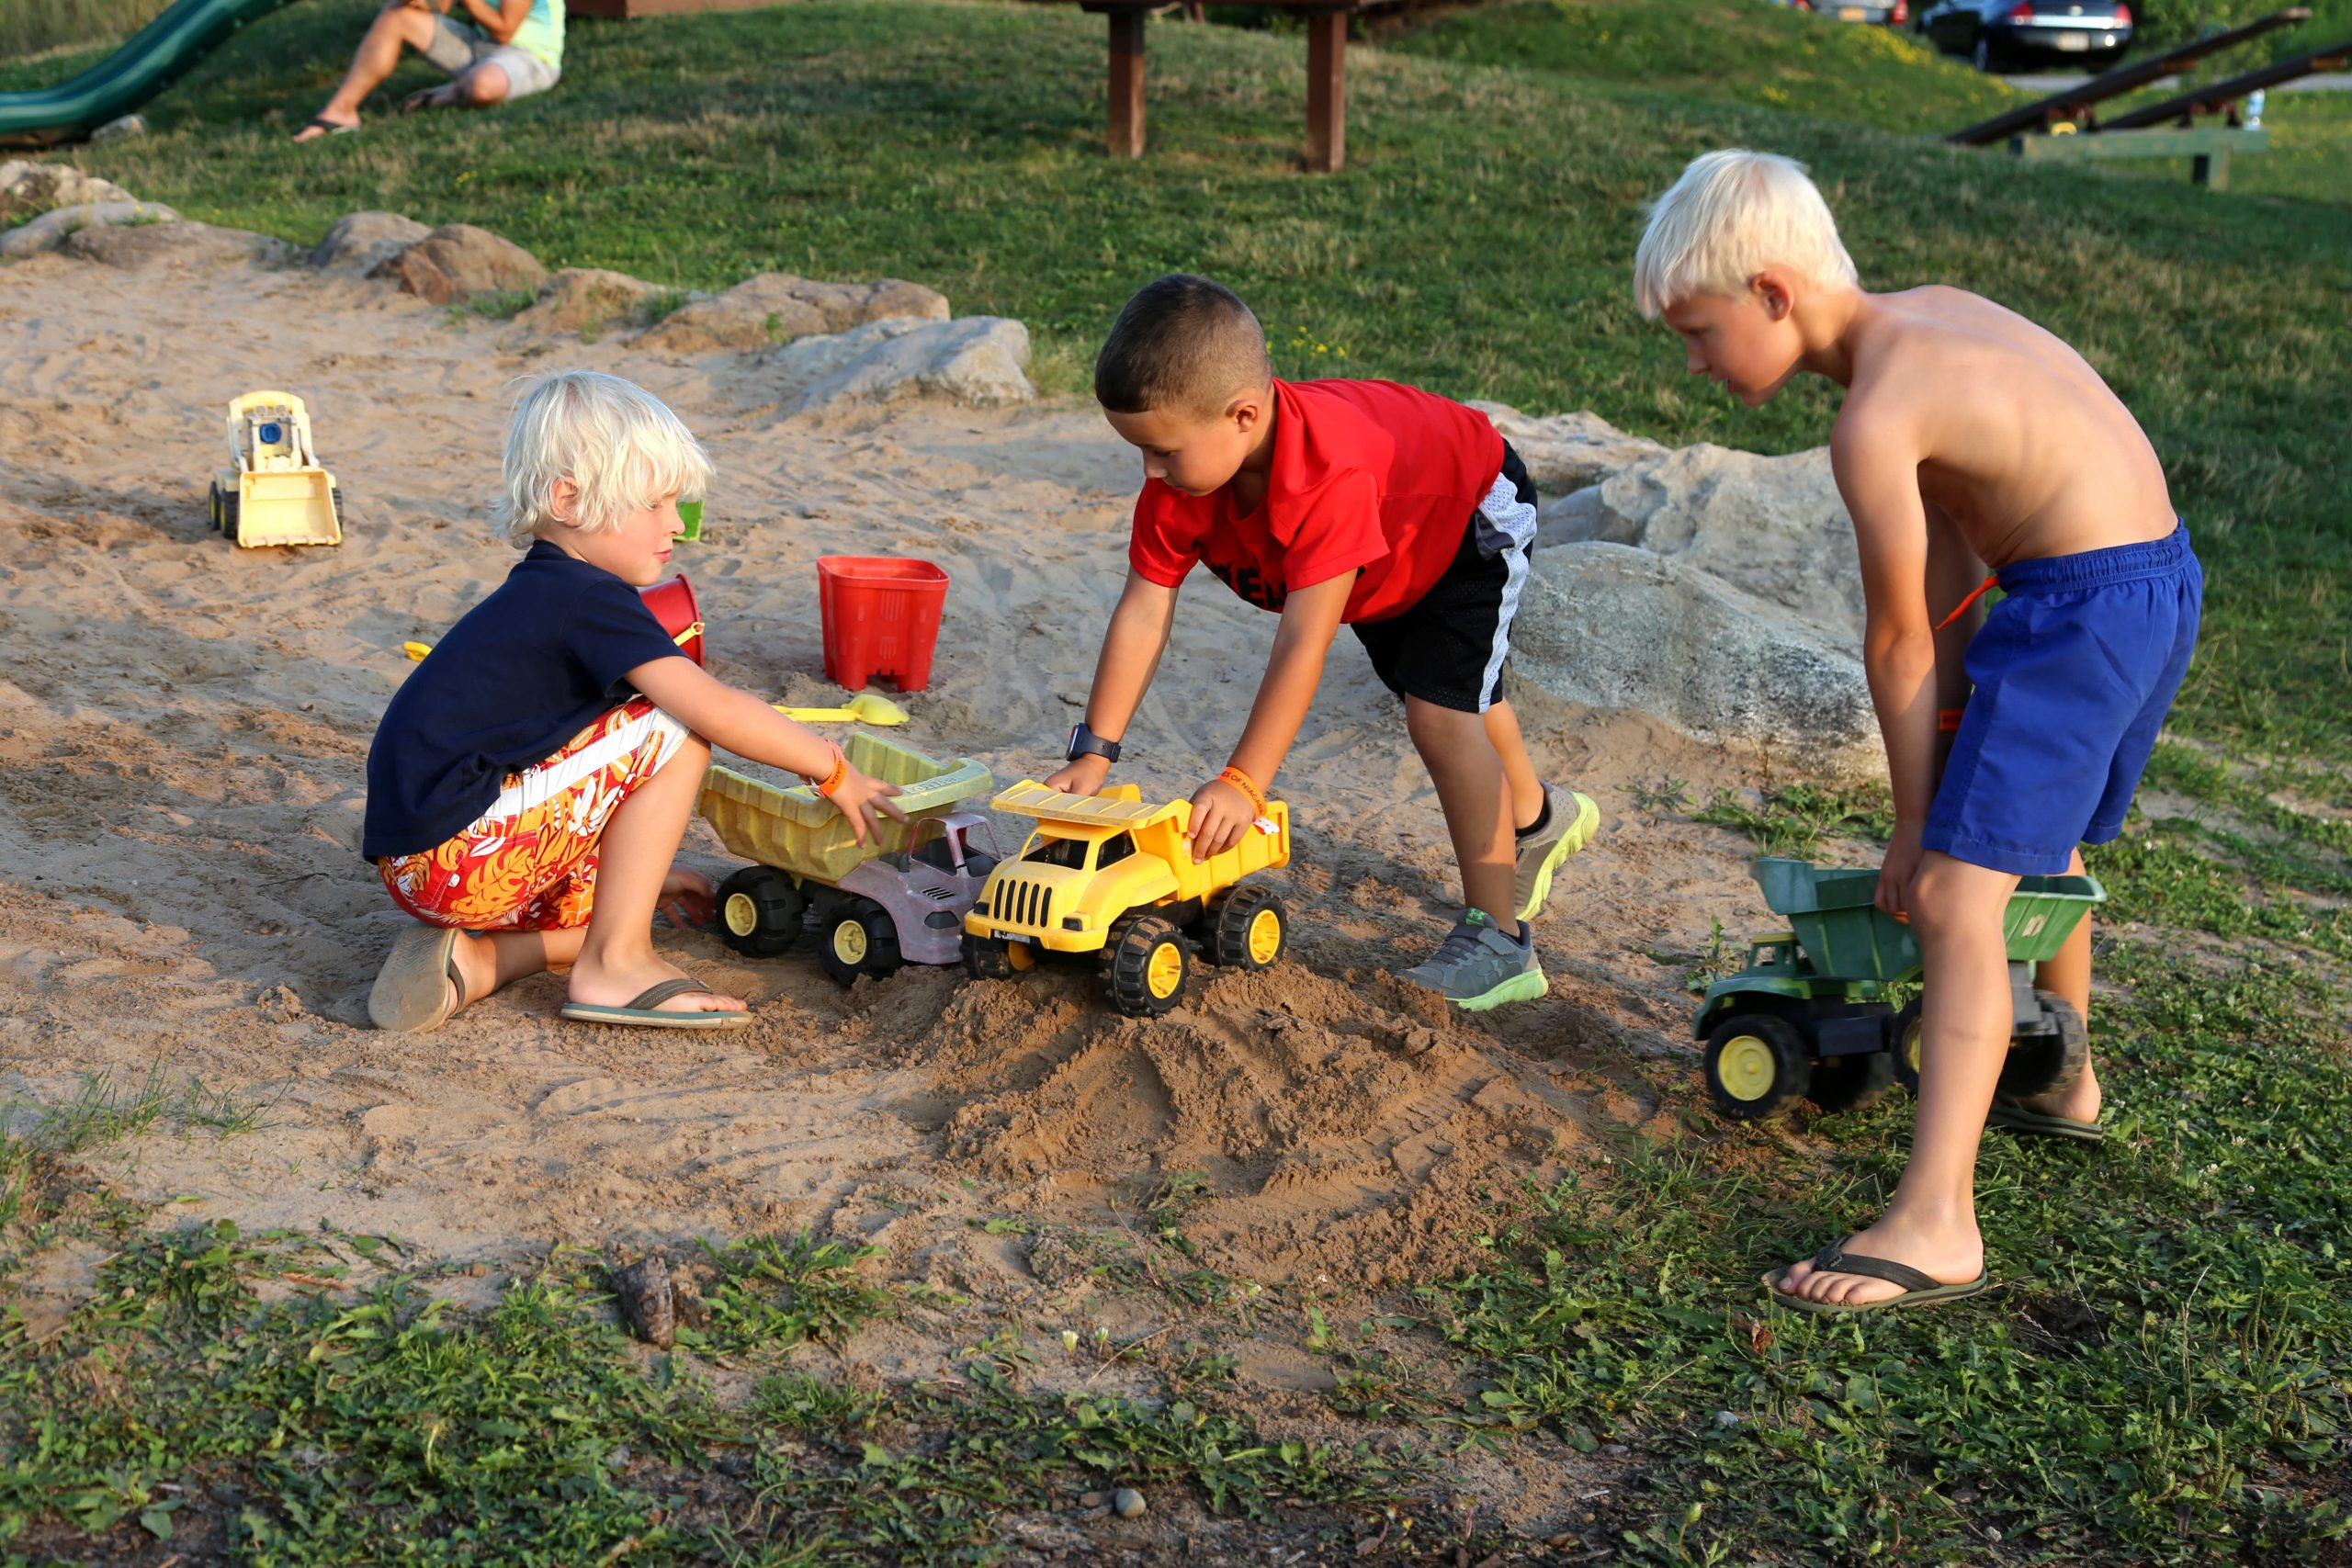 boys playing with trucks in sand pit